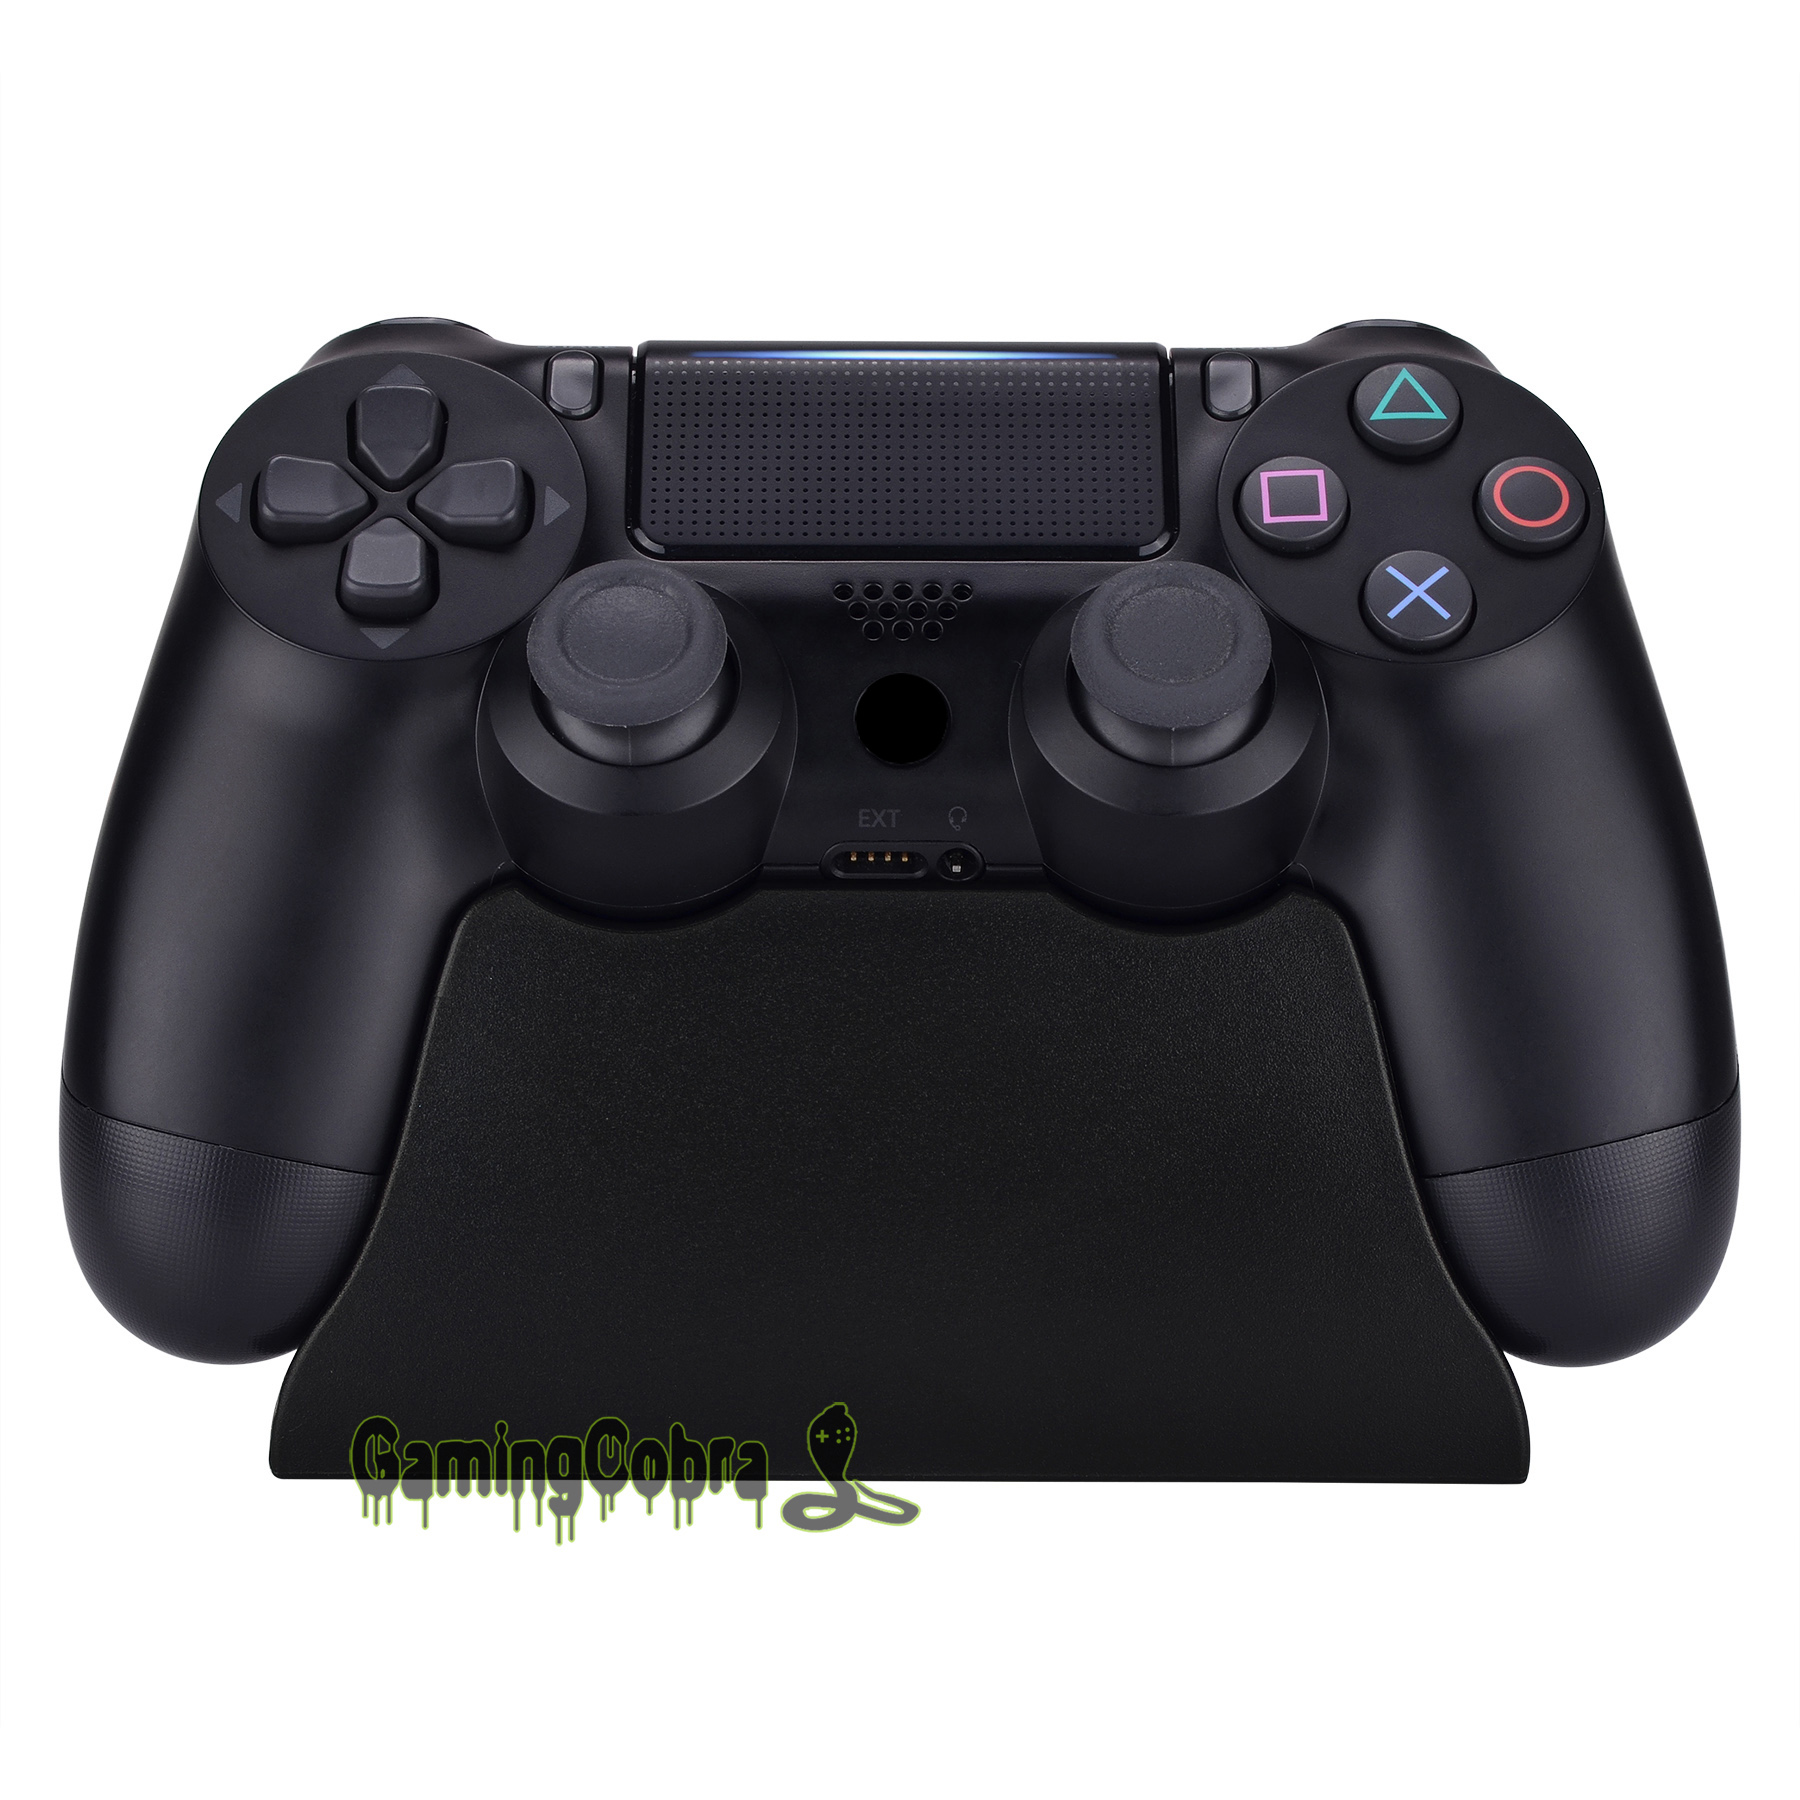 Solid Black Controller Display Stand Gamepad Desk Holder For PlayStation 4 PS4 Slim PS4 Pro Controller With Rubber Pads